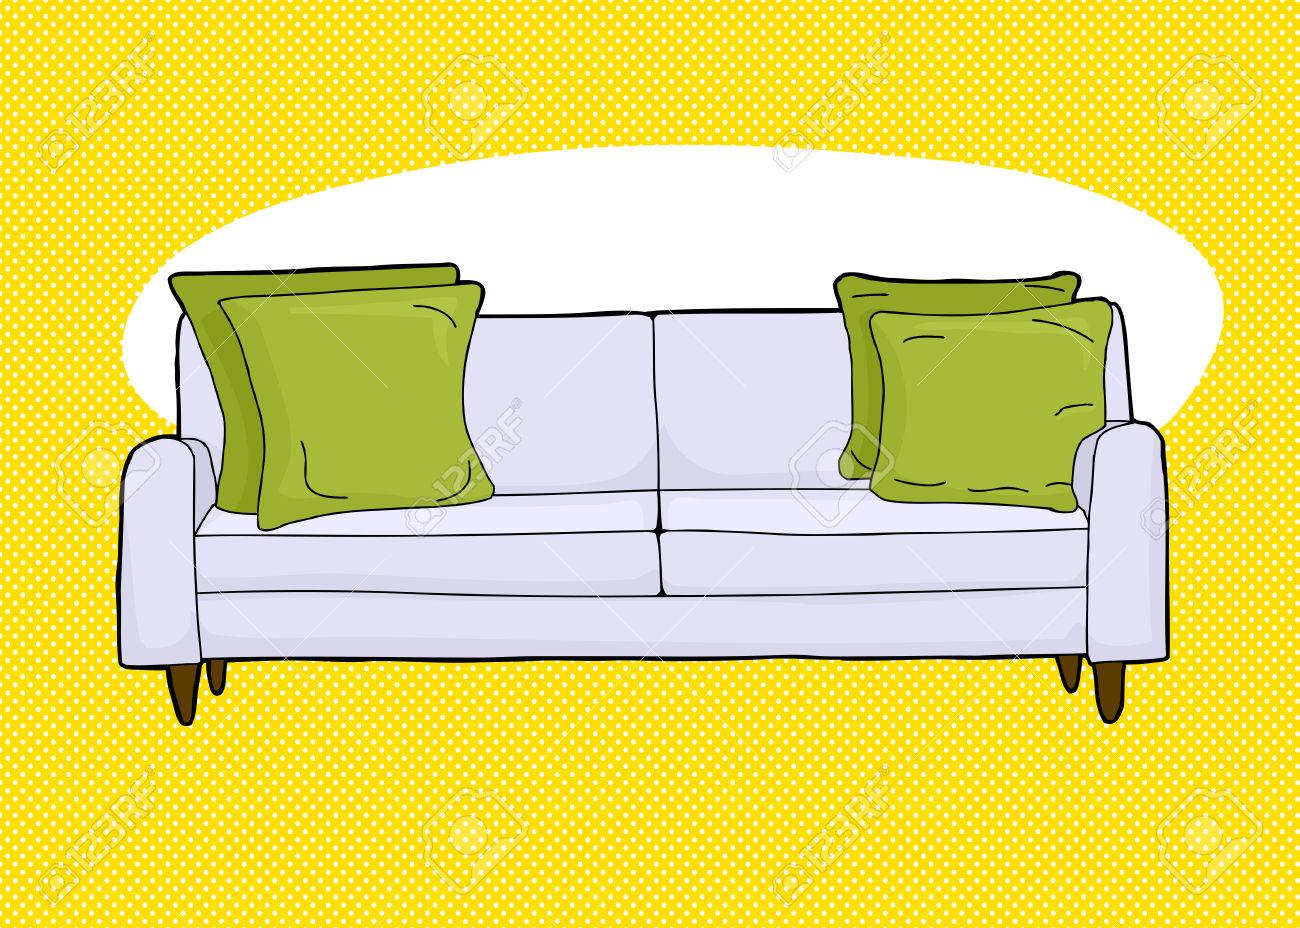 Cartoon Of Single Love Seat Sofa With Corner Cushions Royalty Free.